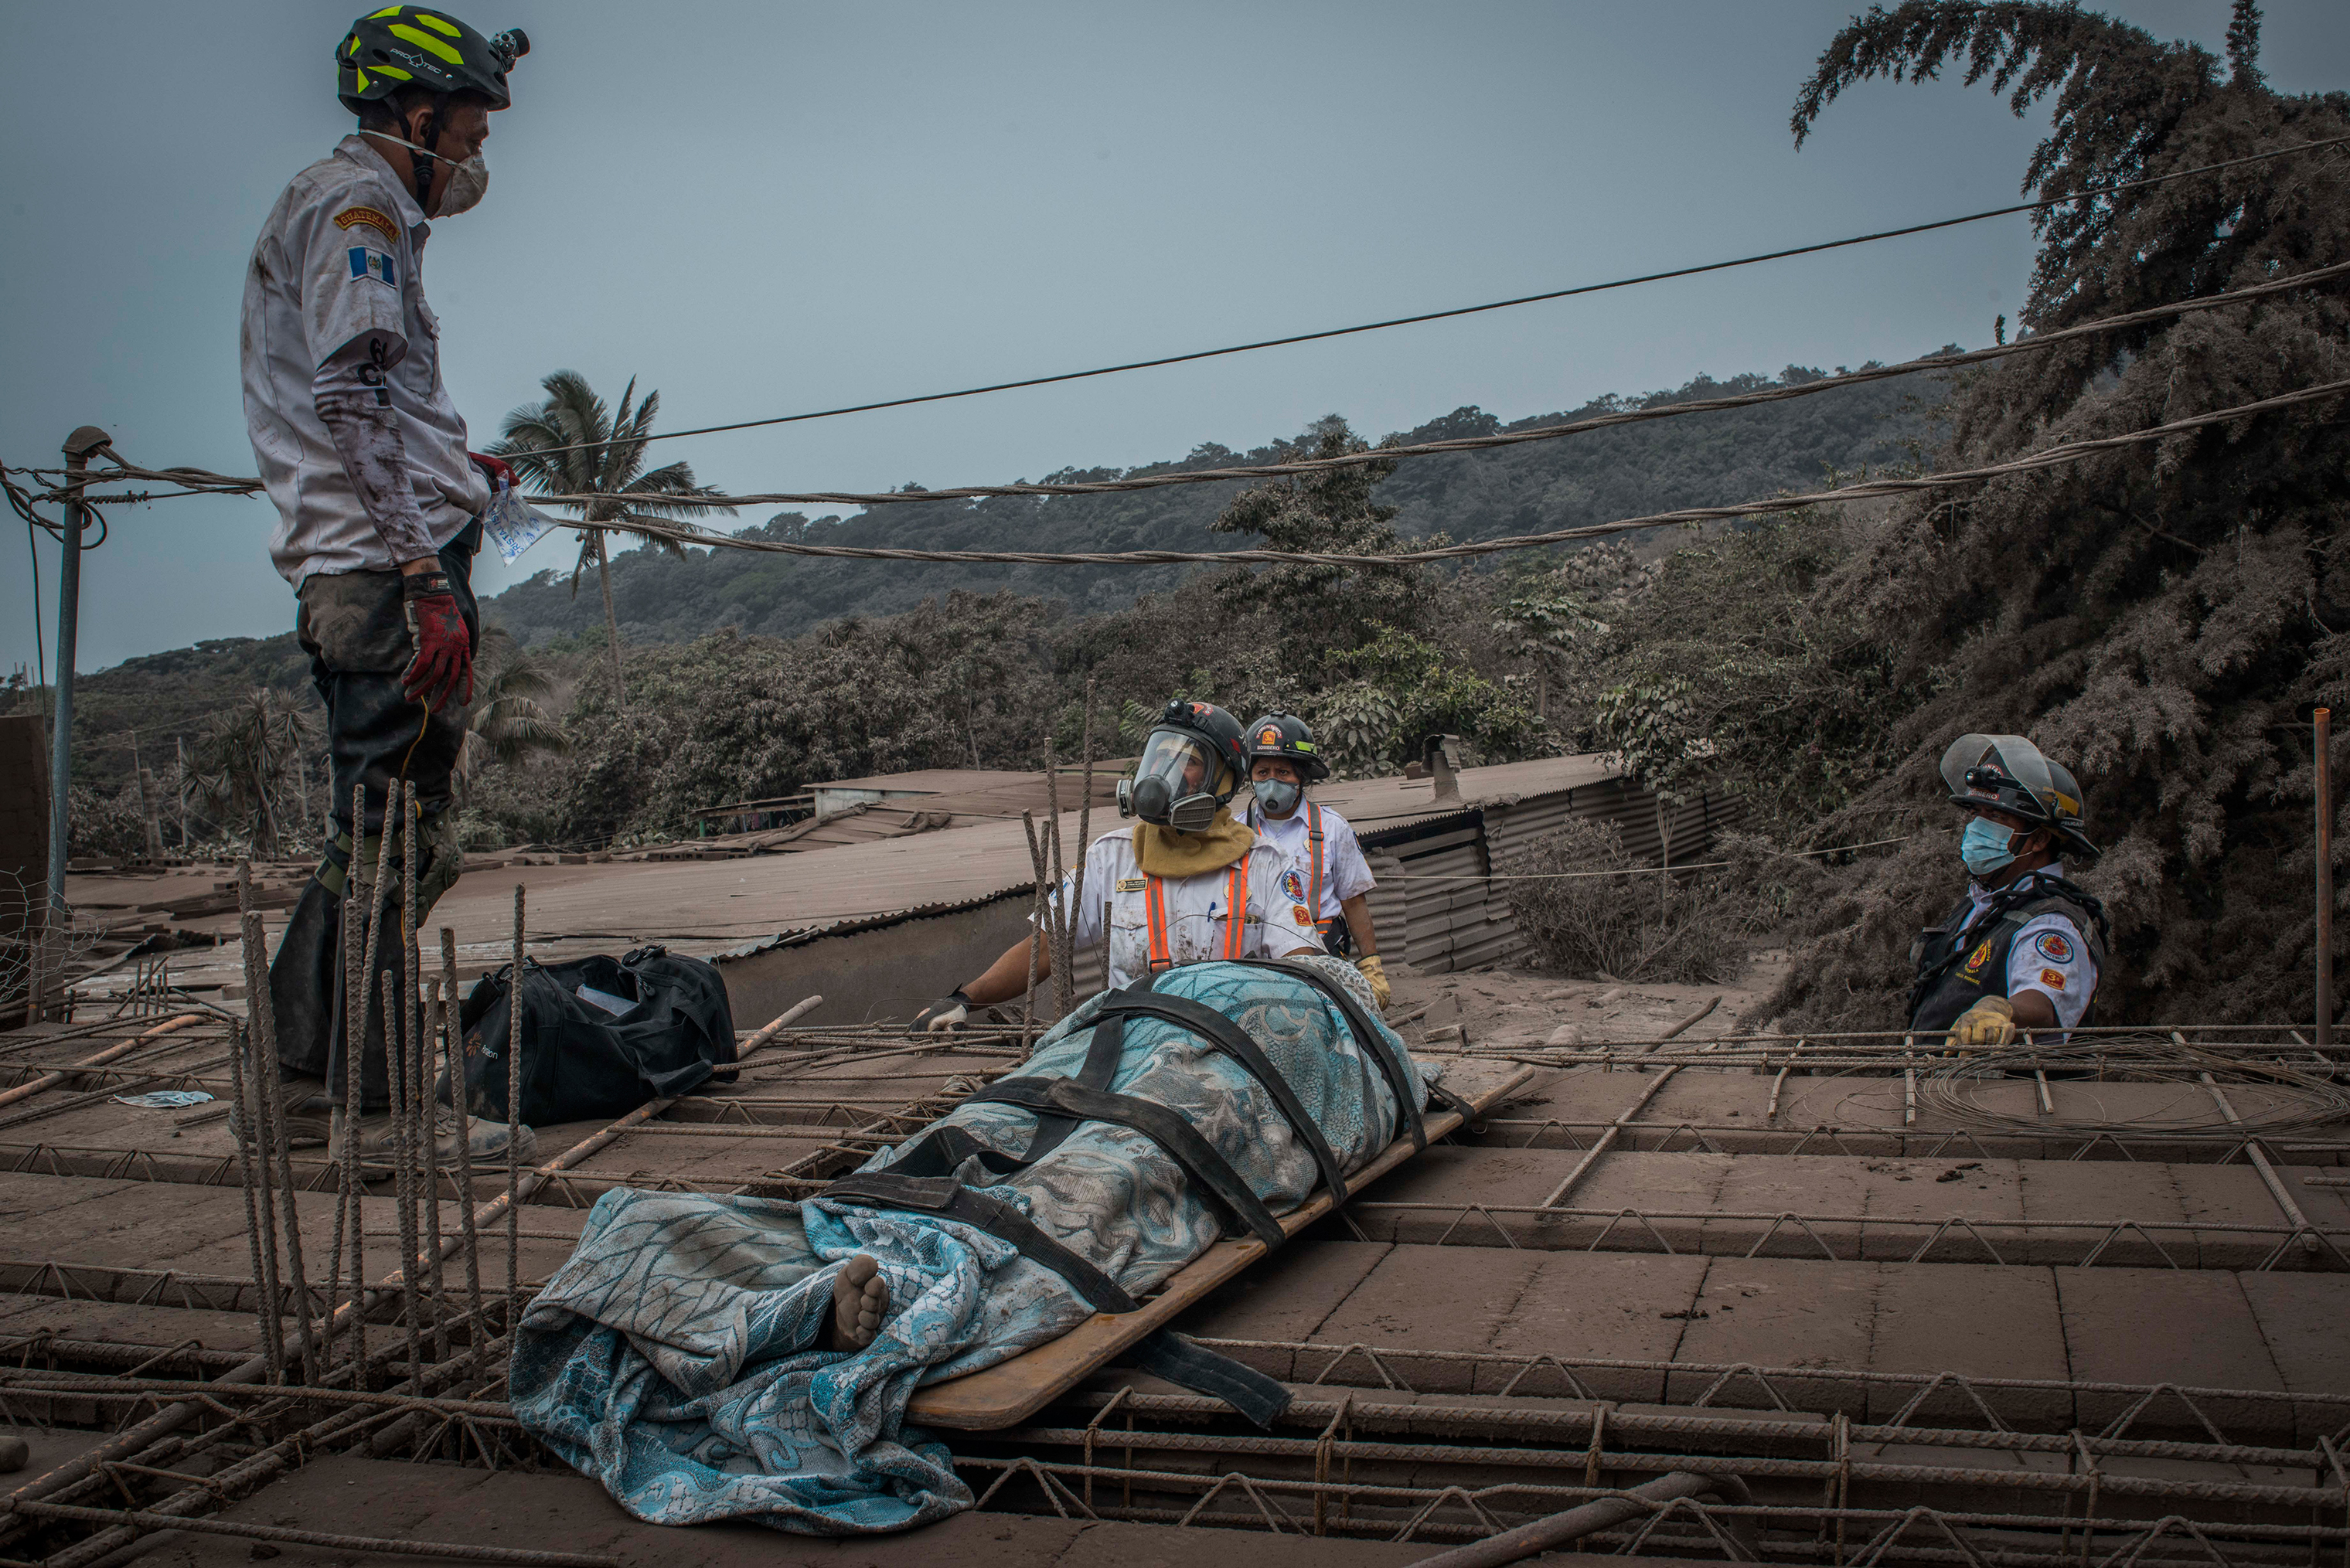 Rescuers recover a body among the ruins of the village of San Miguel Los Lotes, near the Guatemalan city of Escuintla, on June 4.